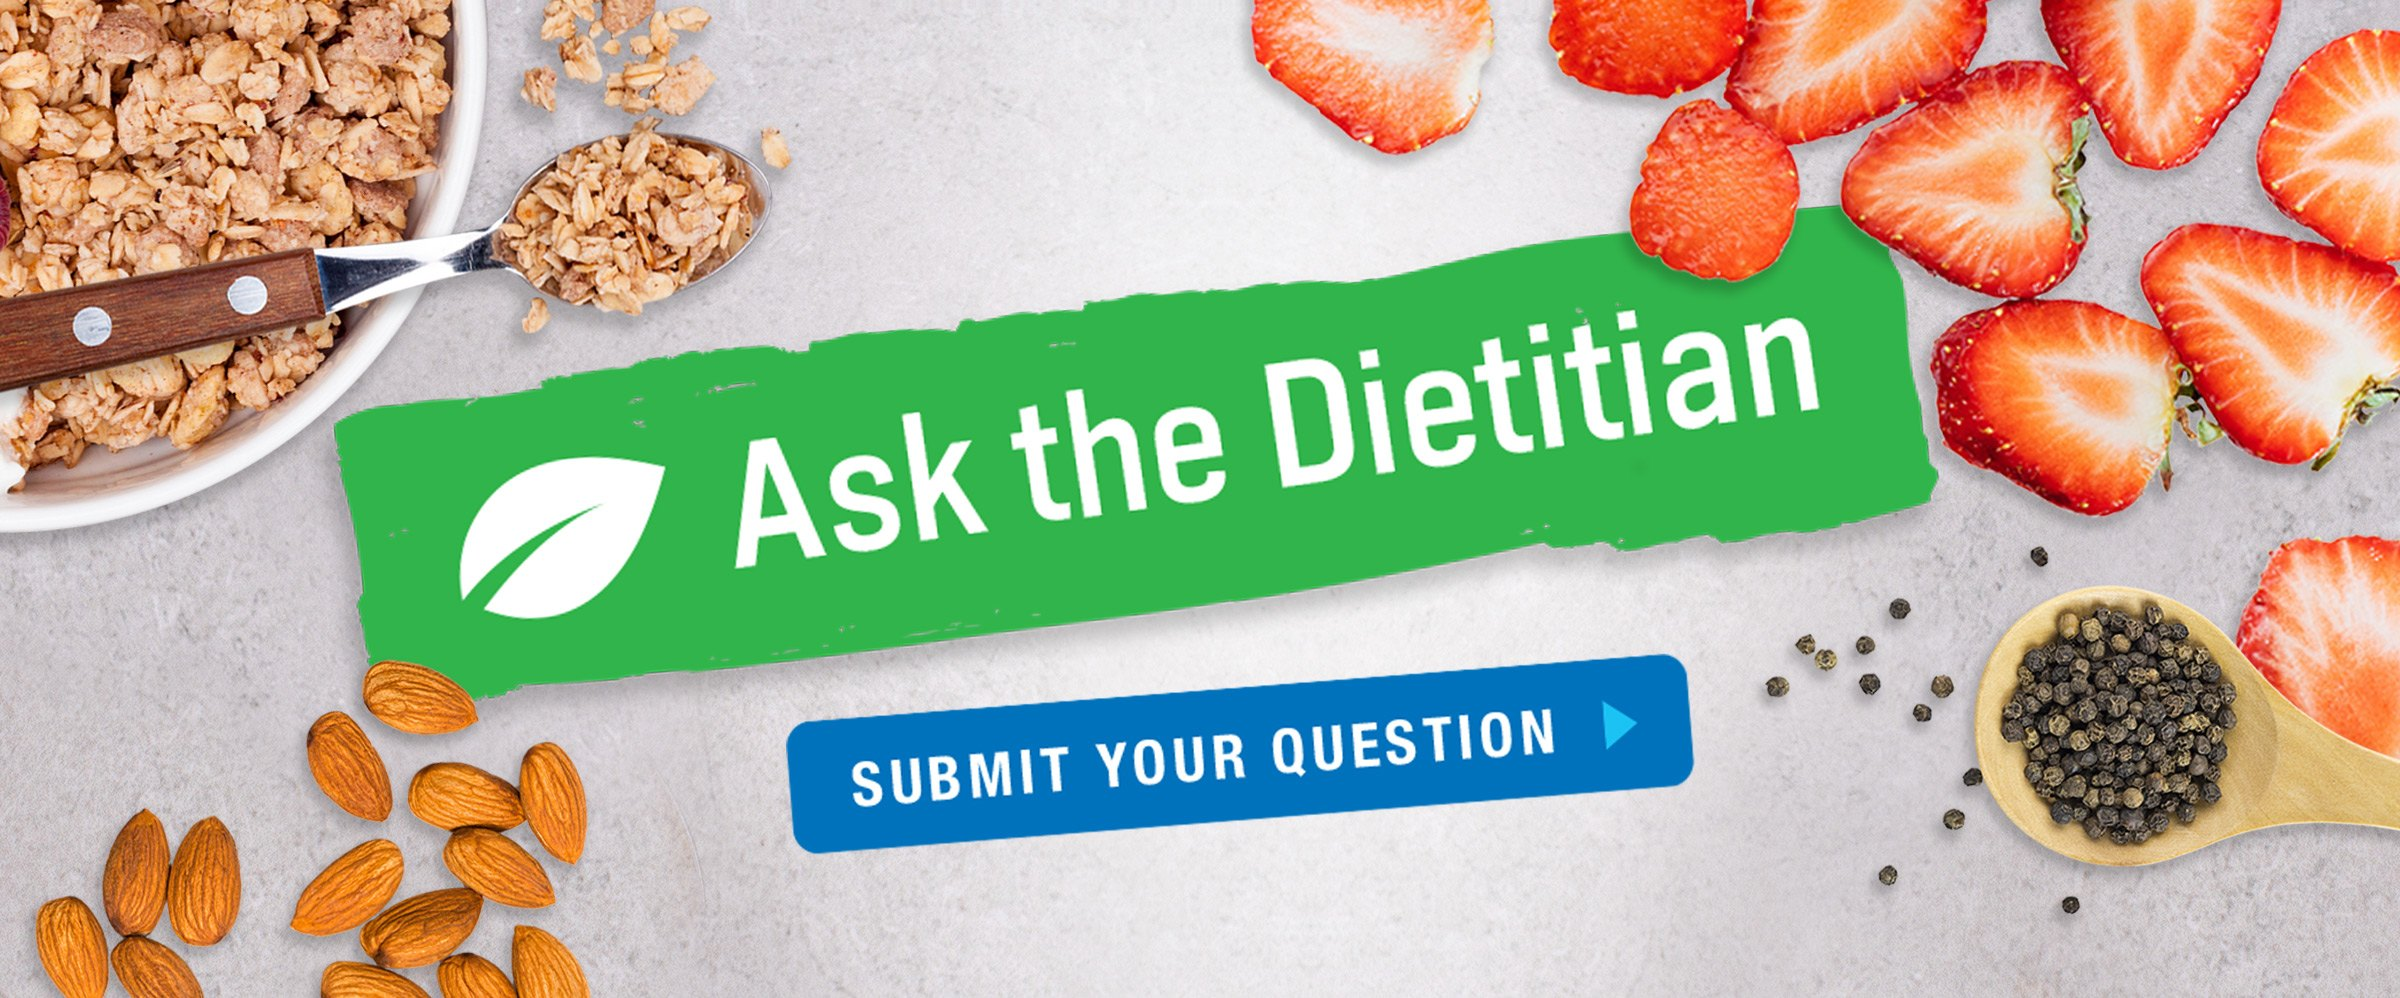 Ask the Dietitian: Submit your question.